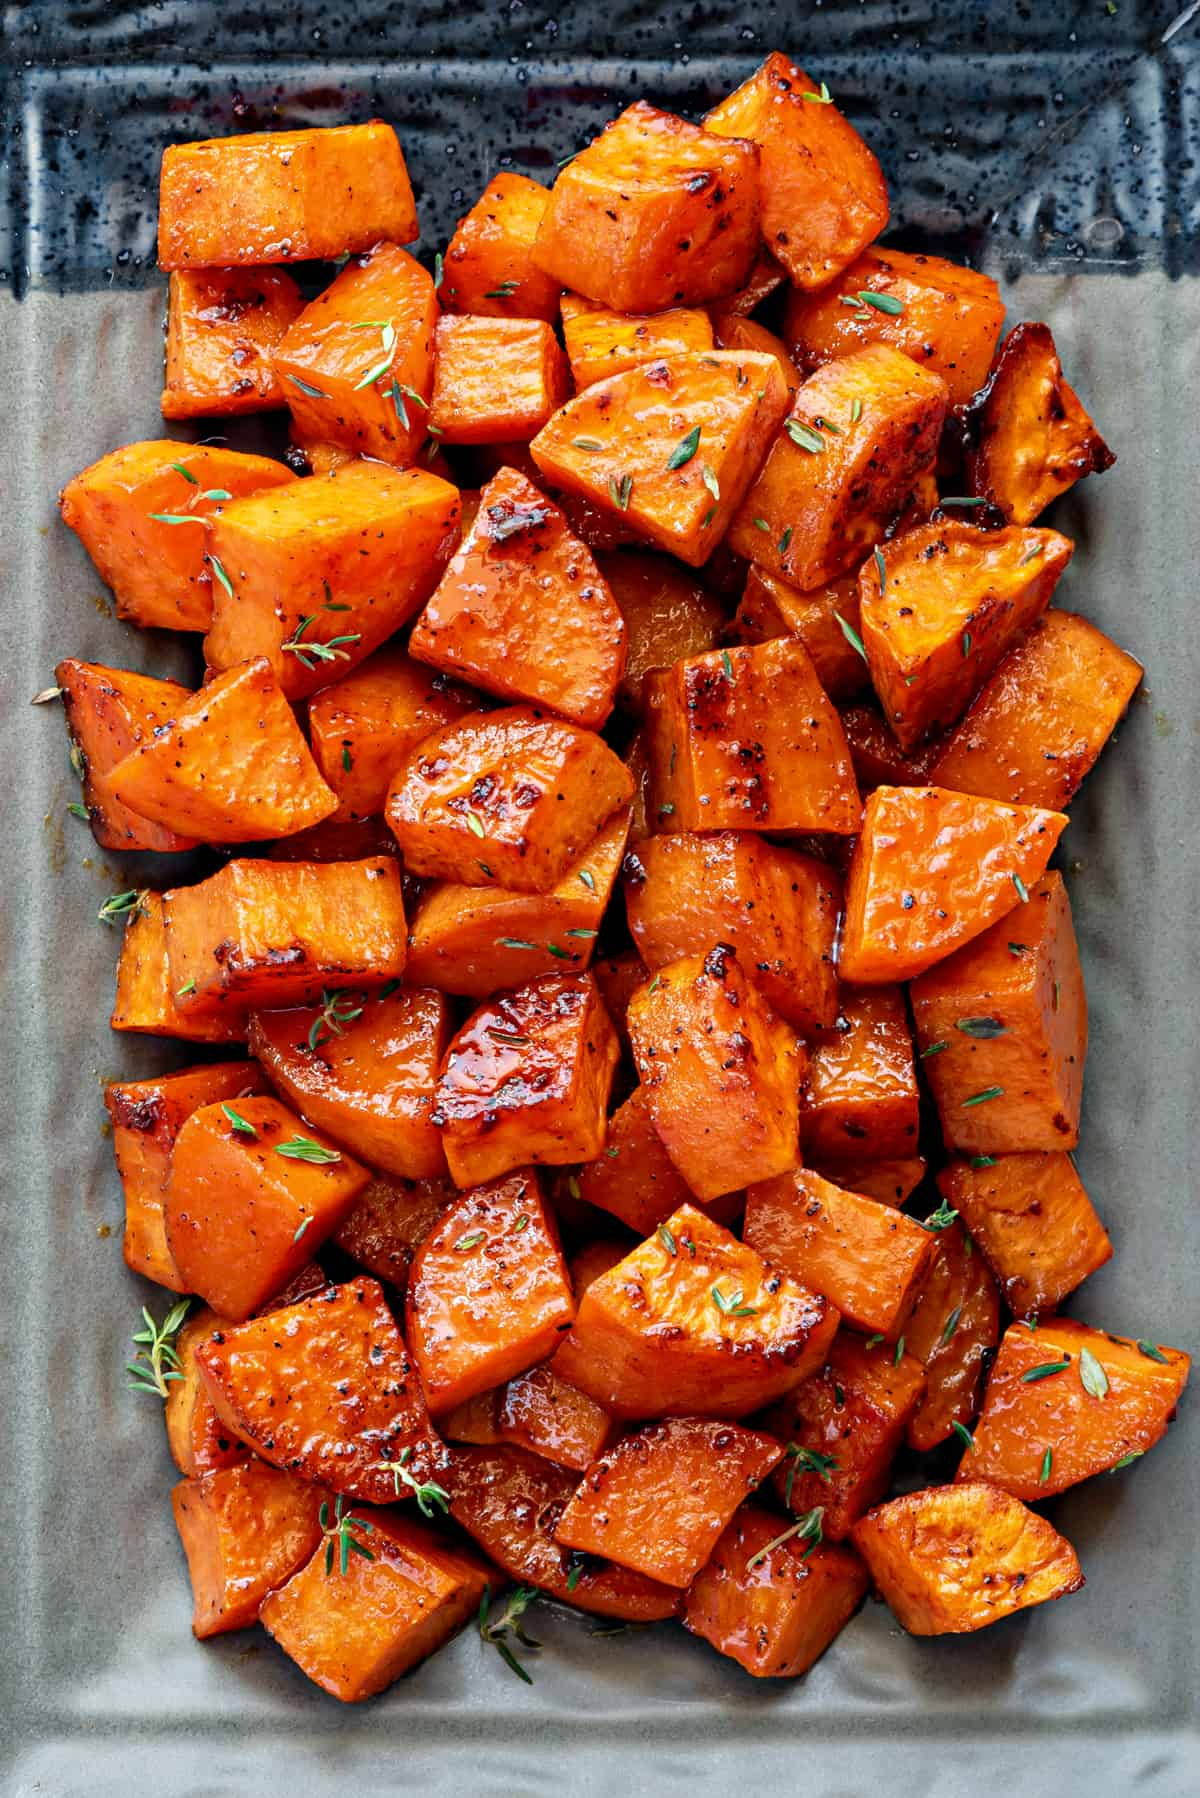 A shot from above, of a plate of roasted sweet potatoes with thyme.